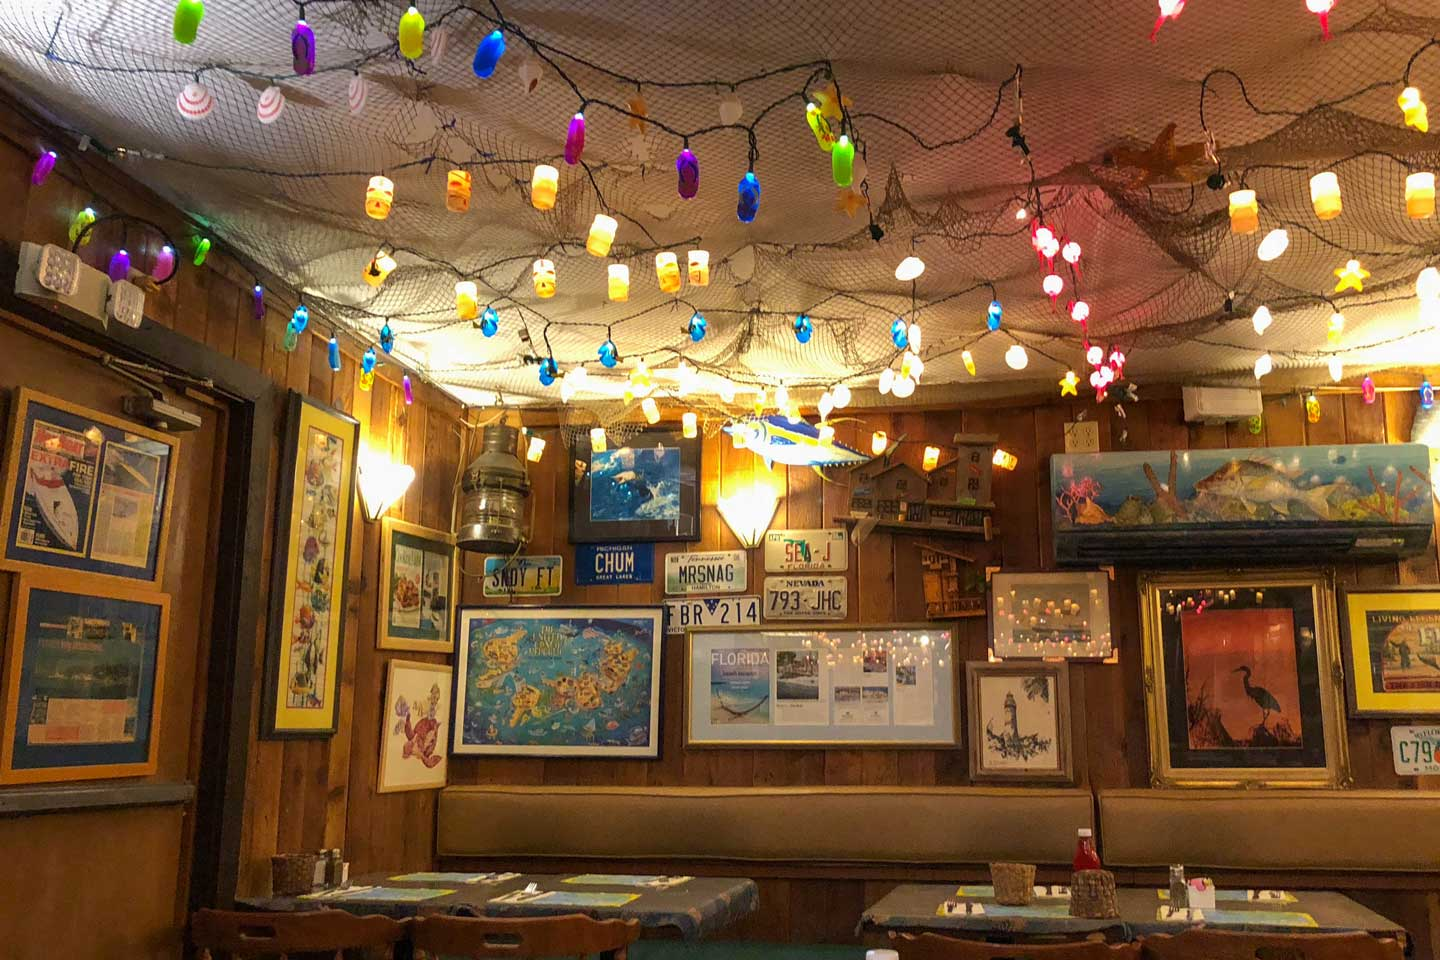 Interior of The Fish House restaurant in Key Largo, Florida with plastic party lights strung from the ceiling.